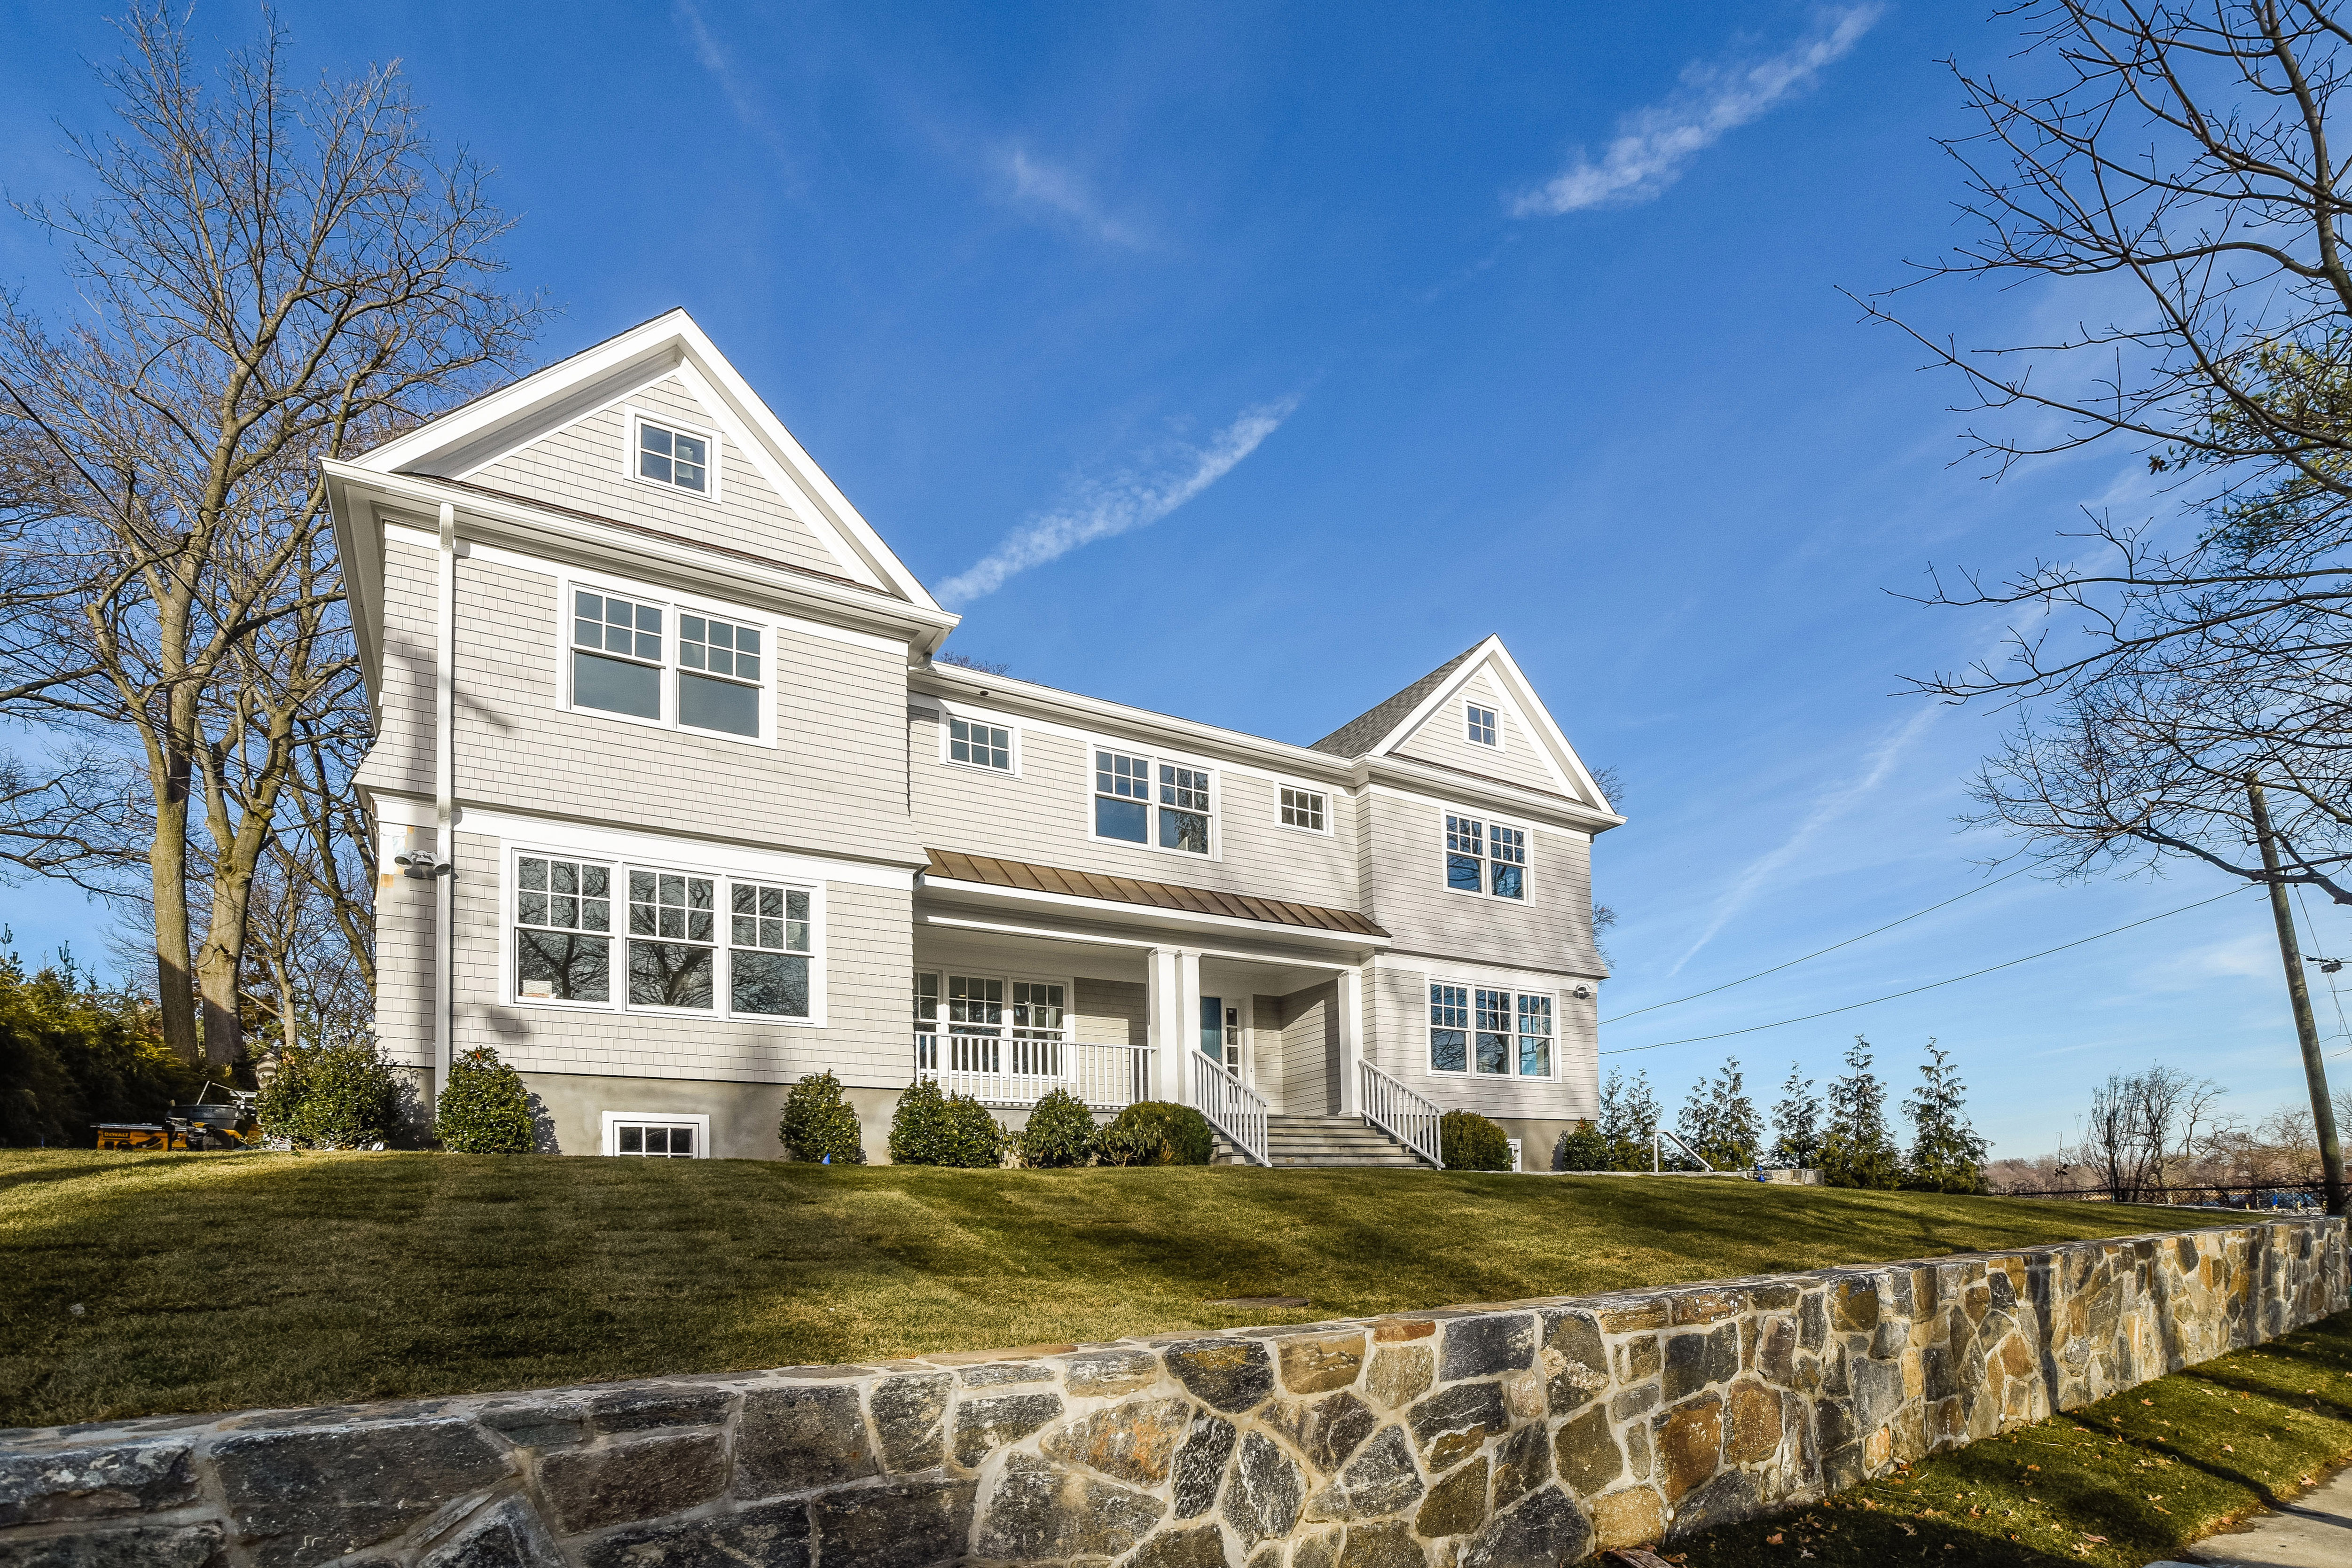 Single Family Home for Sale at 55 Sanford Street Rye, New York, 10580 United States